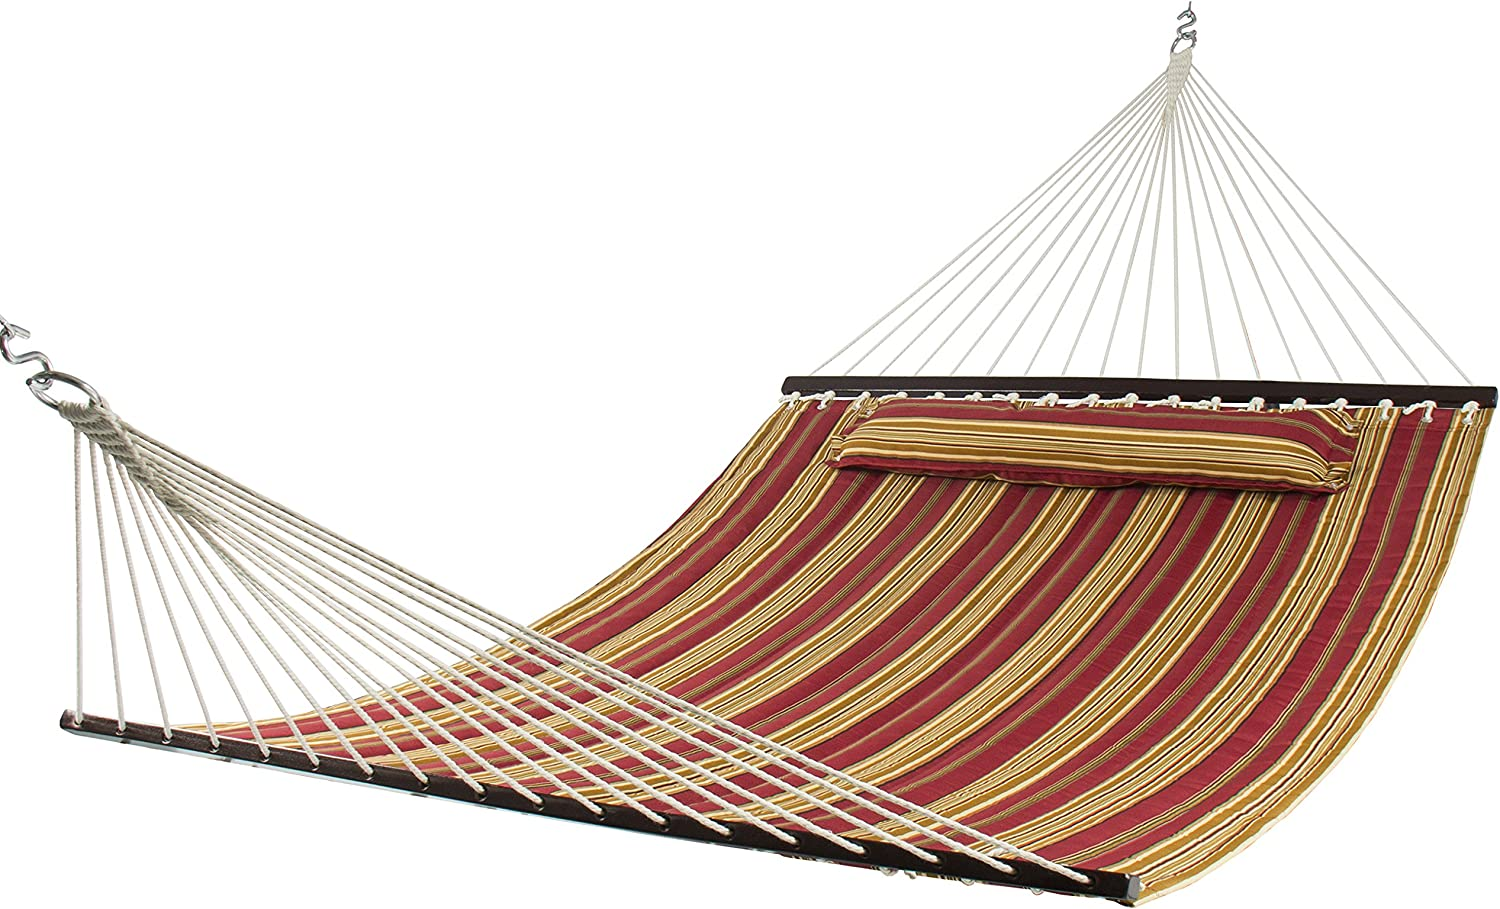 Best Choice Products Double Size Quilted Hammock - 450 lb Weight Capacity - Red Stripe